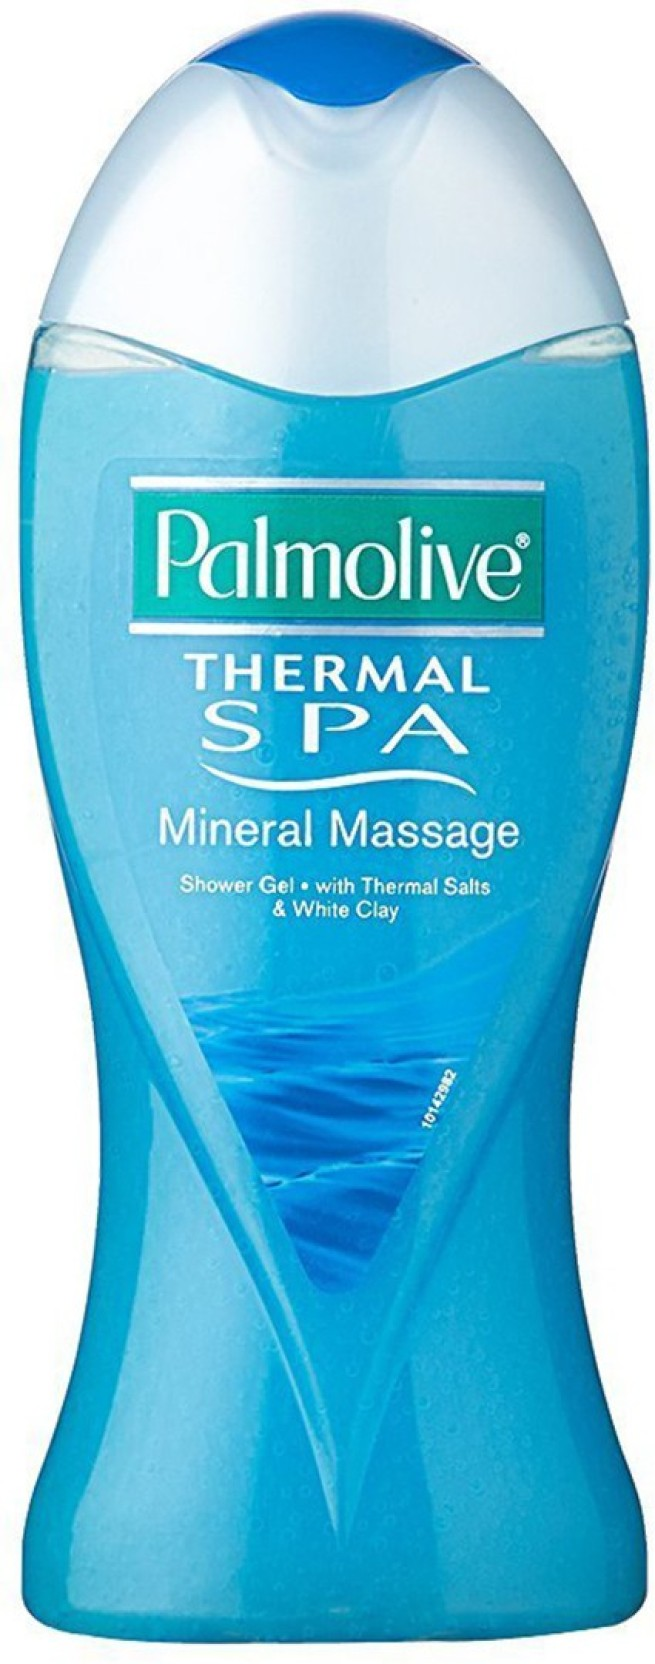 Palmve Shower Gel Morning Tonic 250ml Daftar Harga Terlengkap Palmolive Sensual 750ml Refill 450ml Twinpacks Thermal Spa Mineral Massage Add To Basket